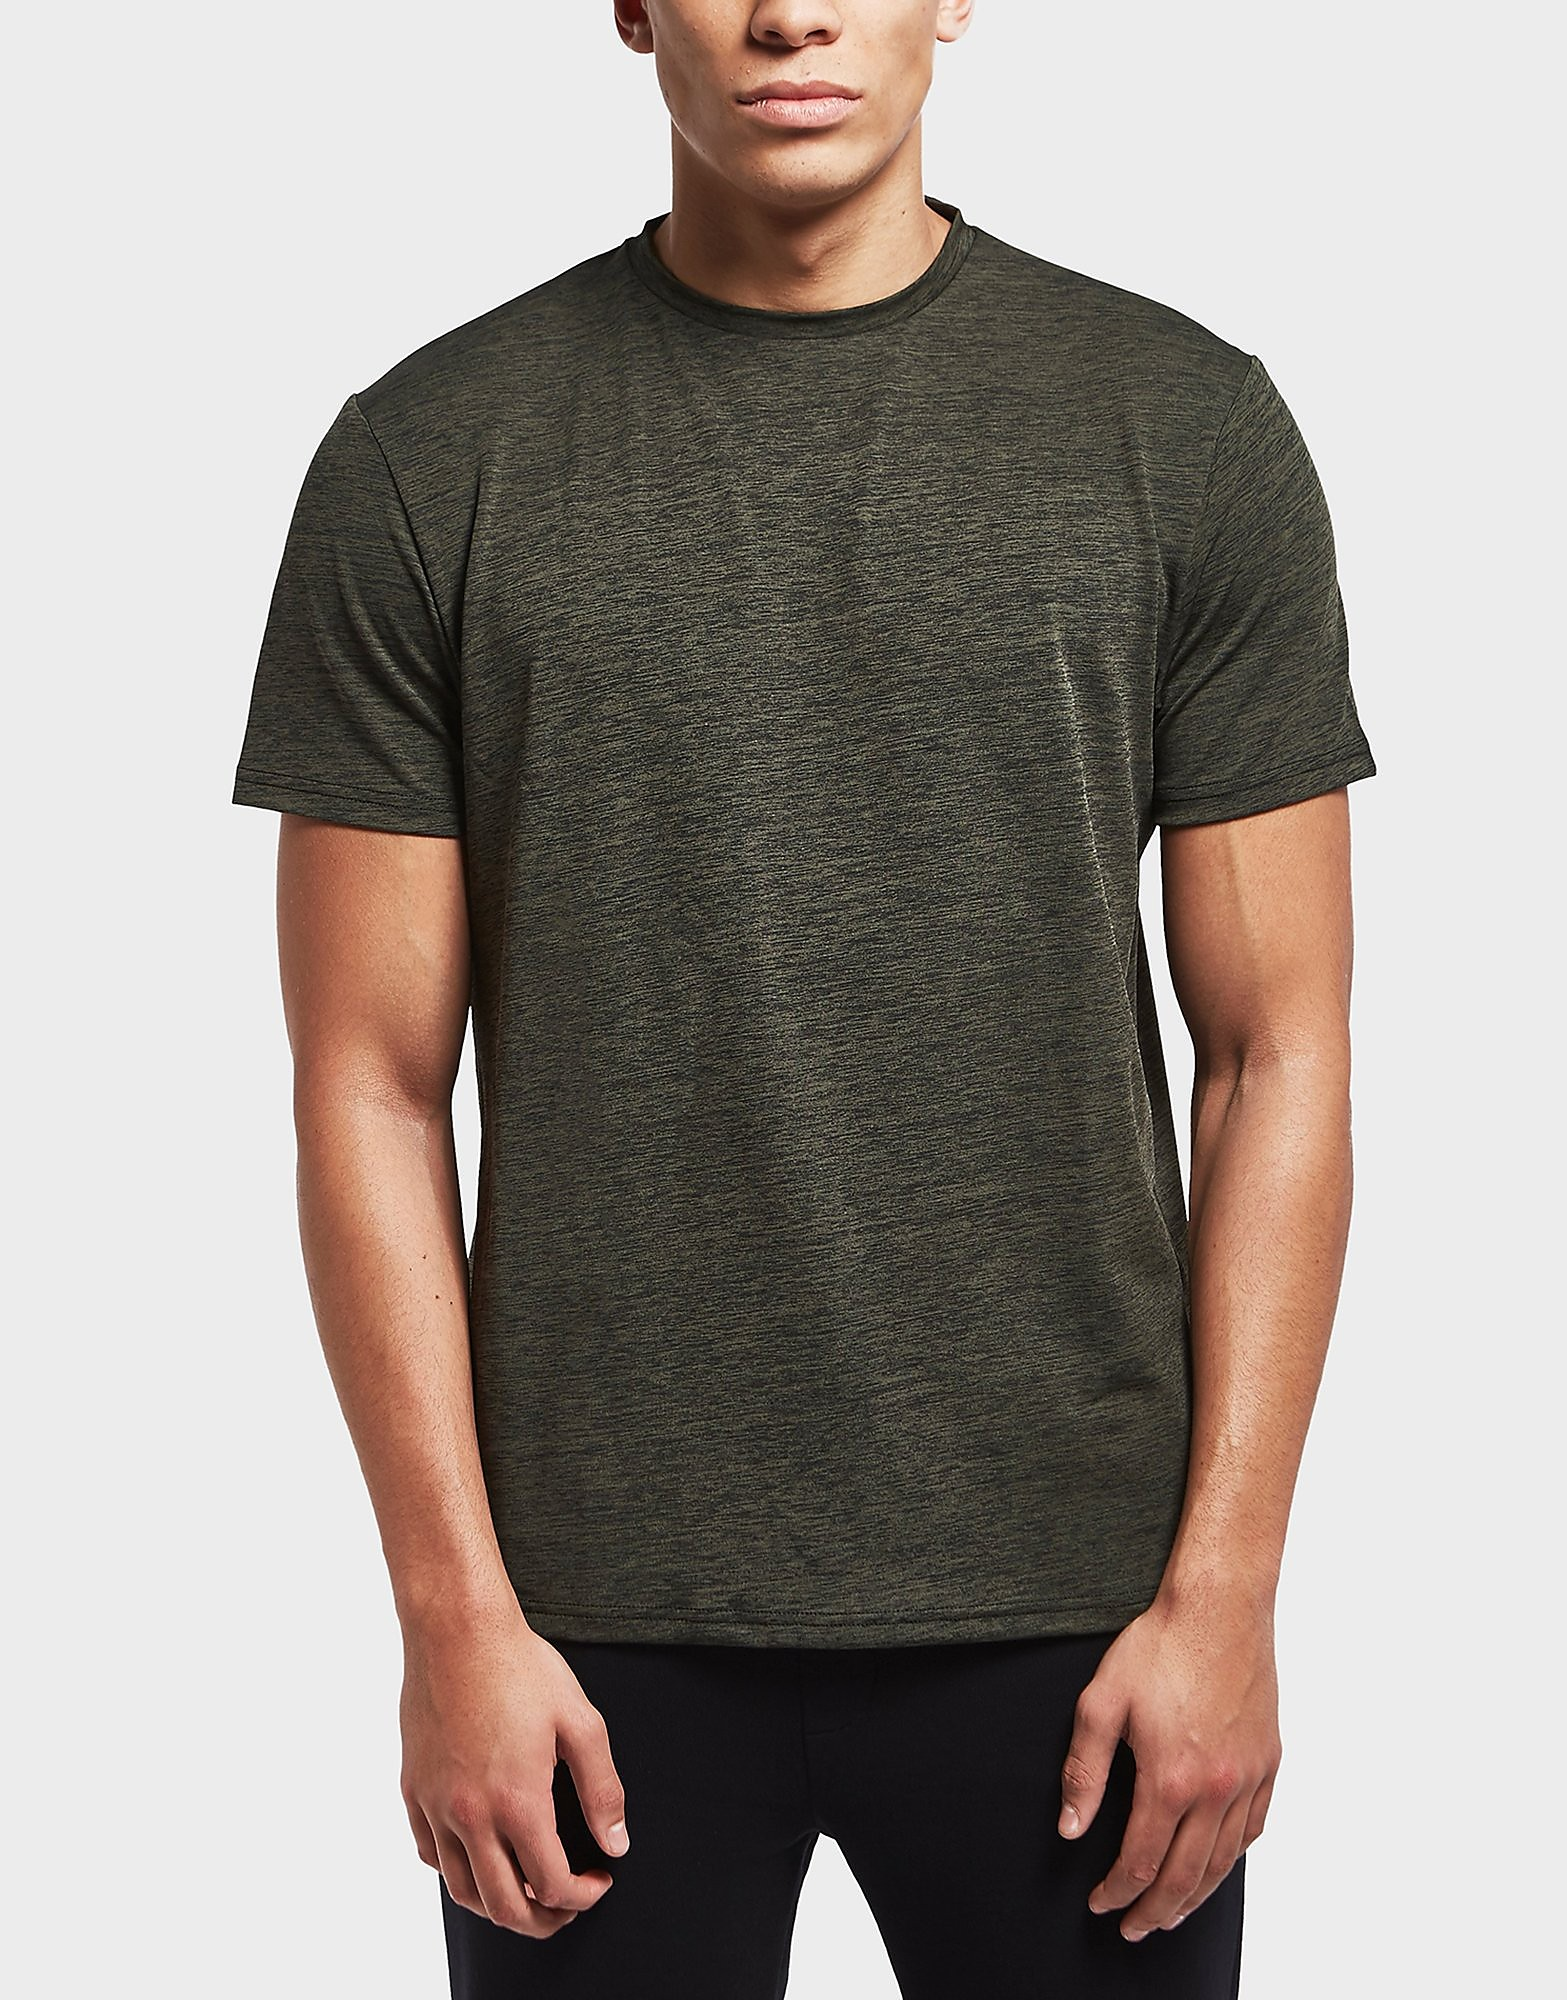 One True Saxon Spaced Short Sleeve T-Shirt - Exclusive